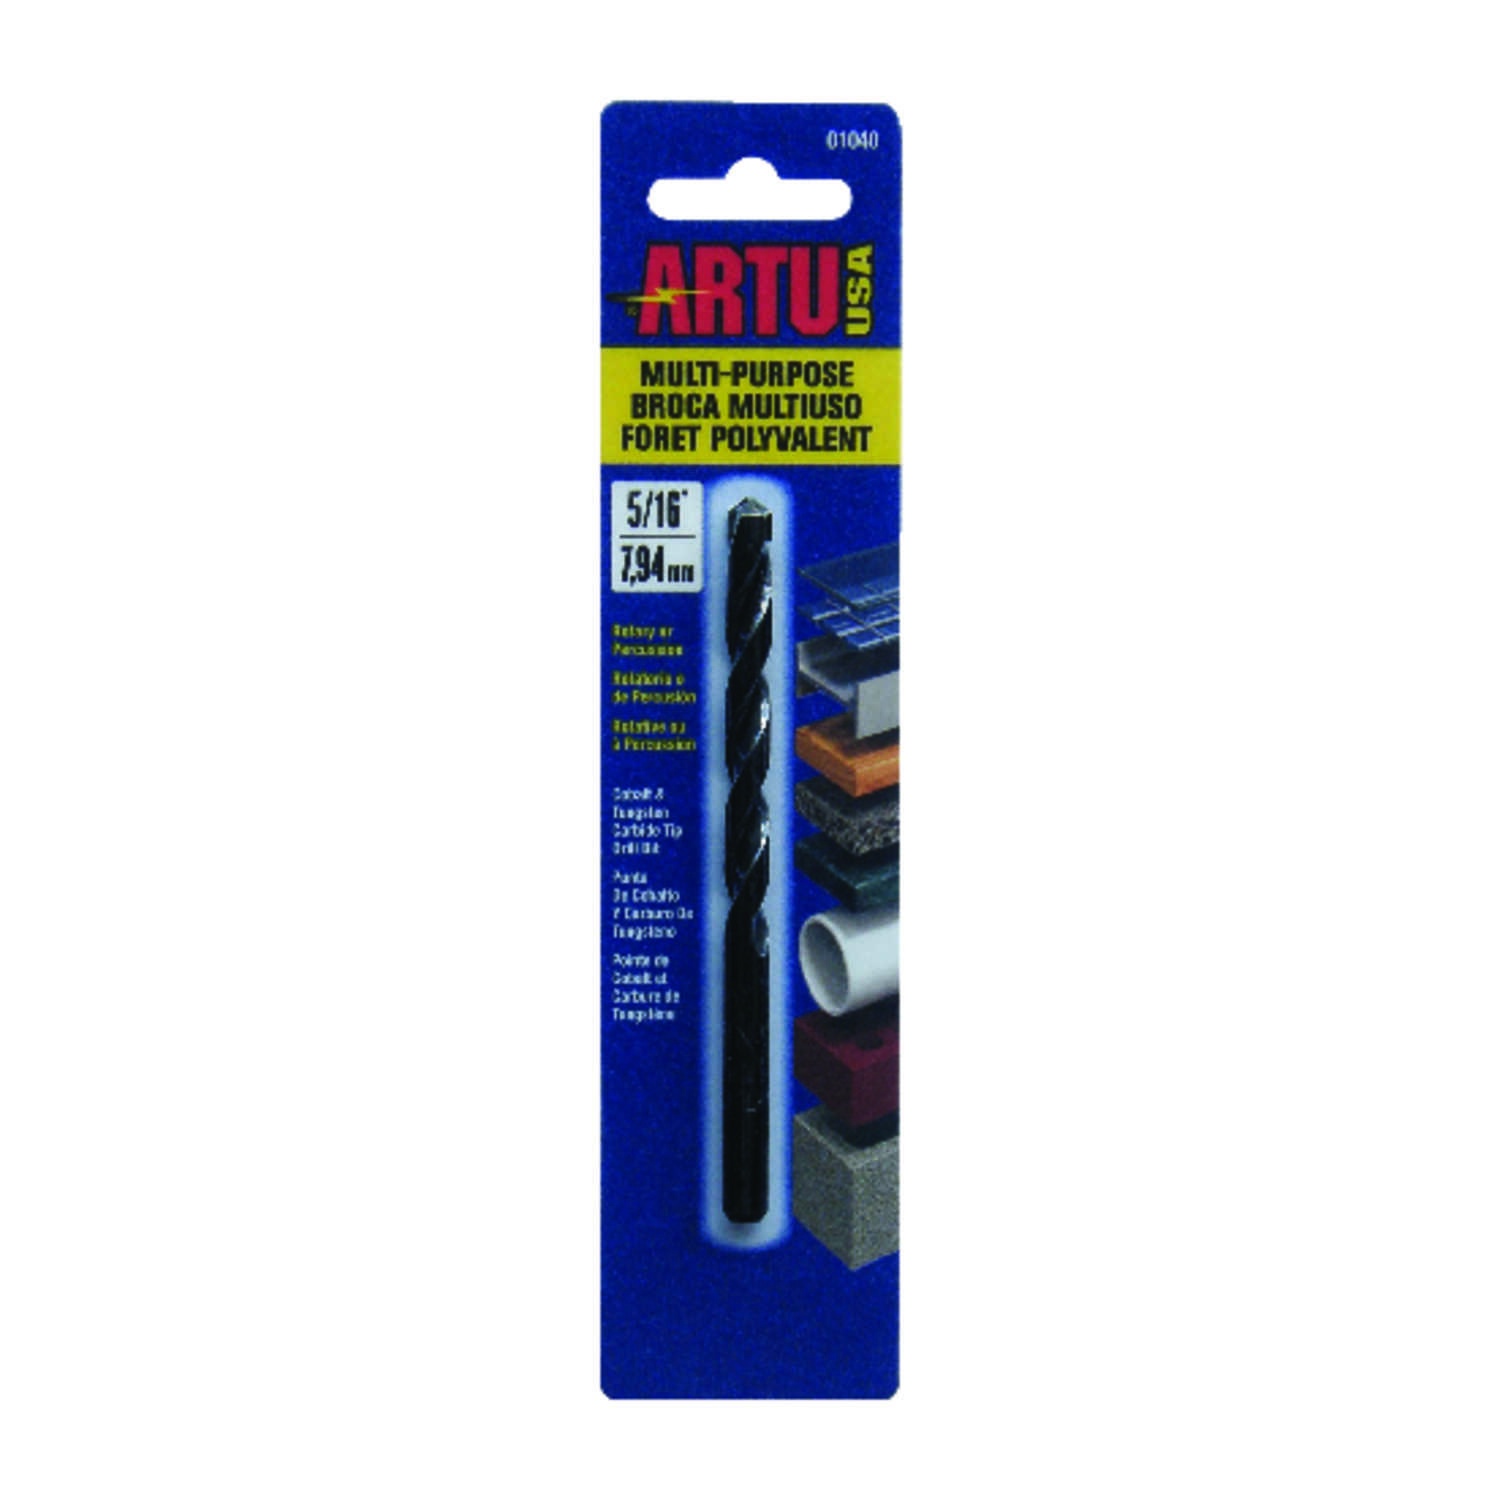 ARTU  5/16 in. Dia. x 4-1/2 in. L Tungsten Carbide Tipped  General Purpose Drill Bit  5/16 in. Strai